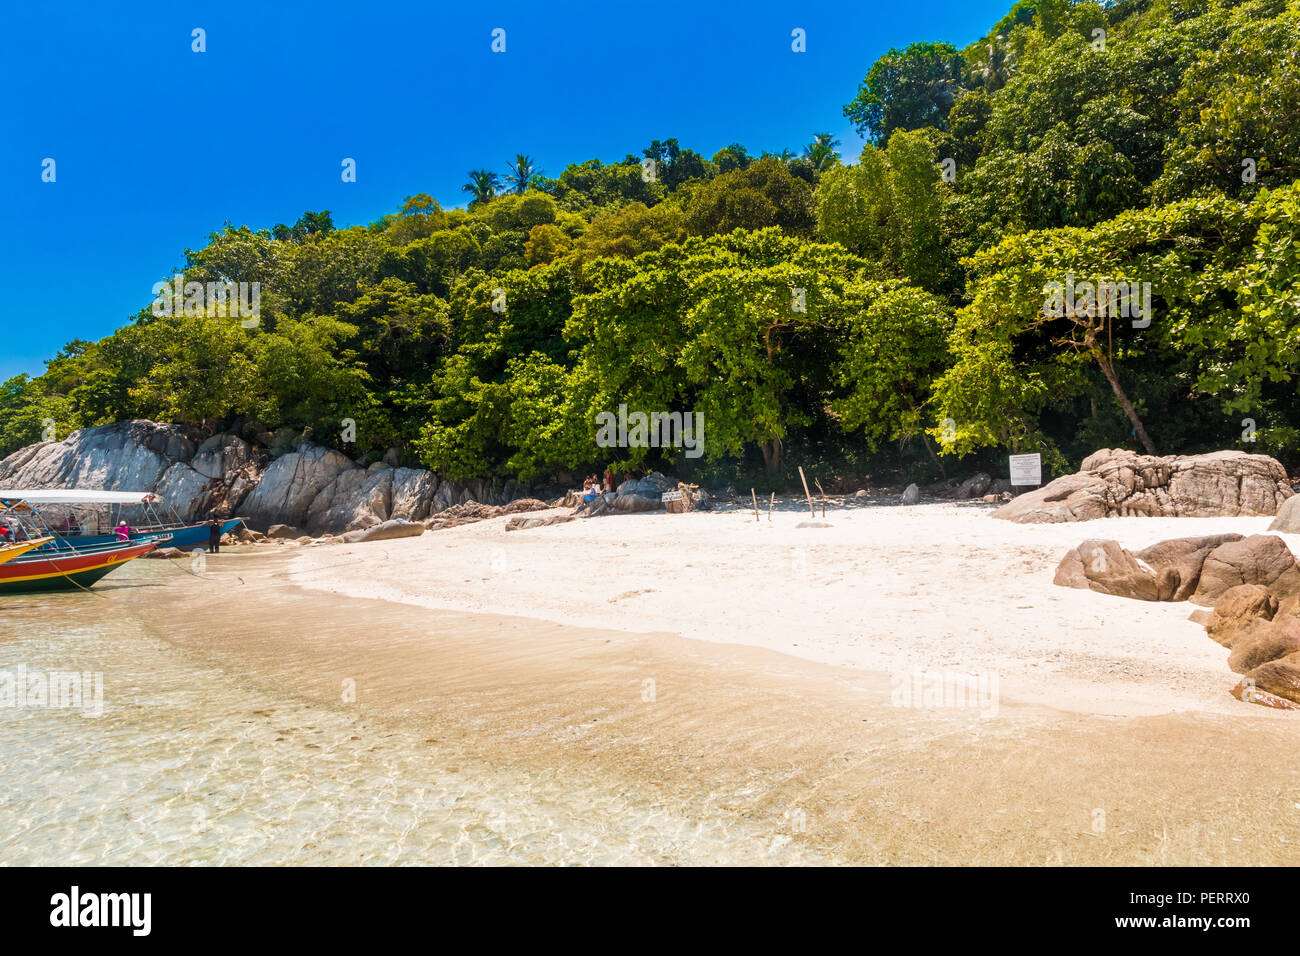 The powdery white sandy beach surrounded by rocks & trees, tourists resting in the shade and boats floating on the glimmering shallow water of... - Stock Image